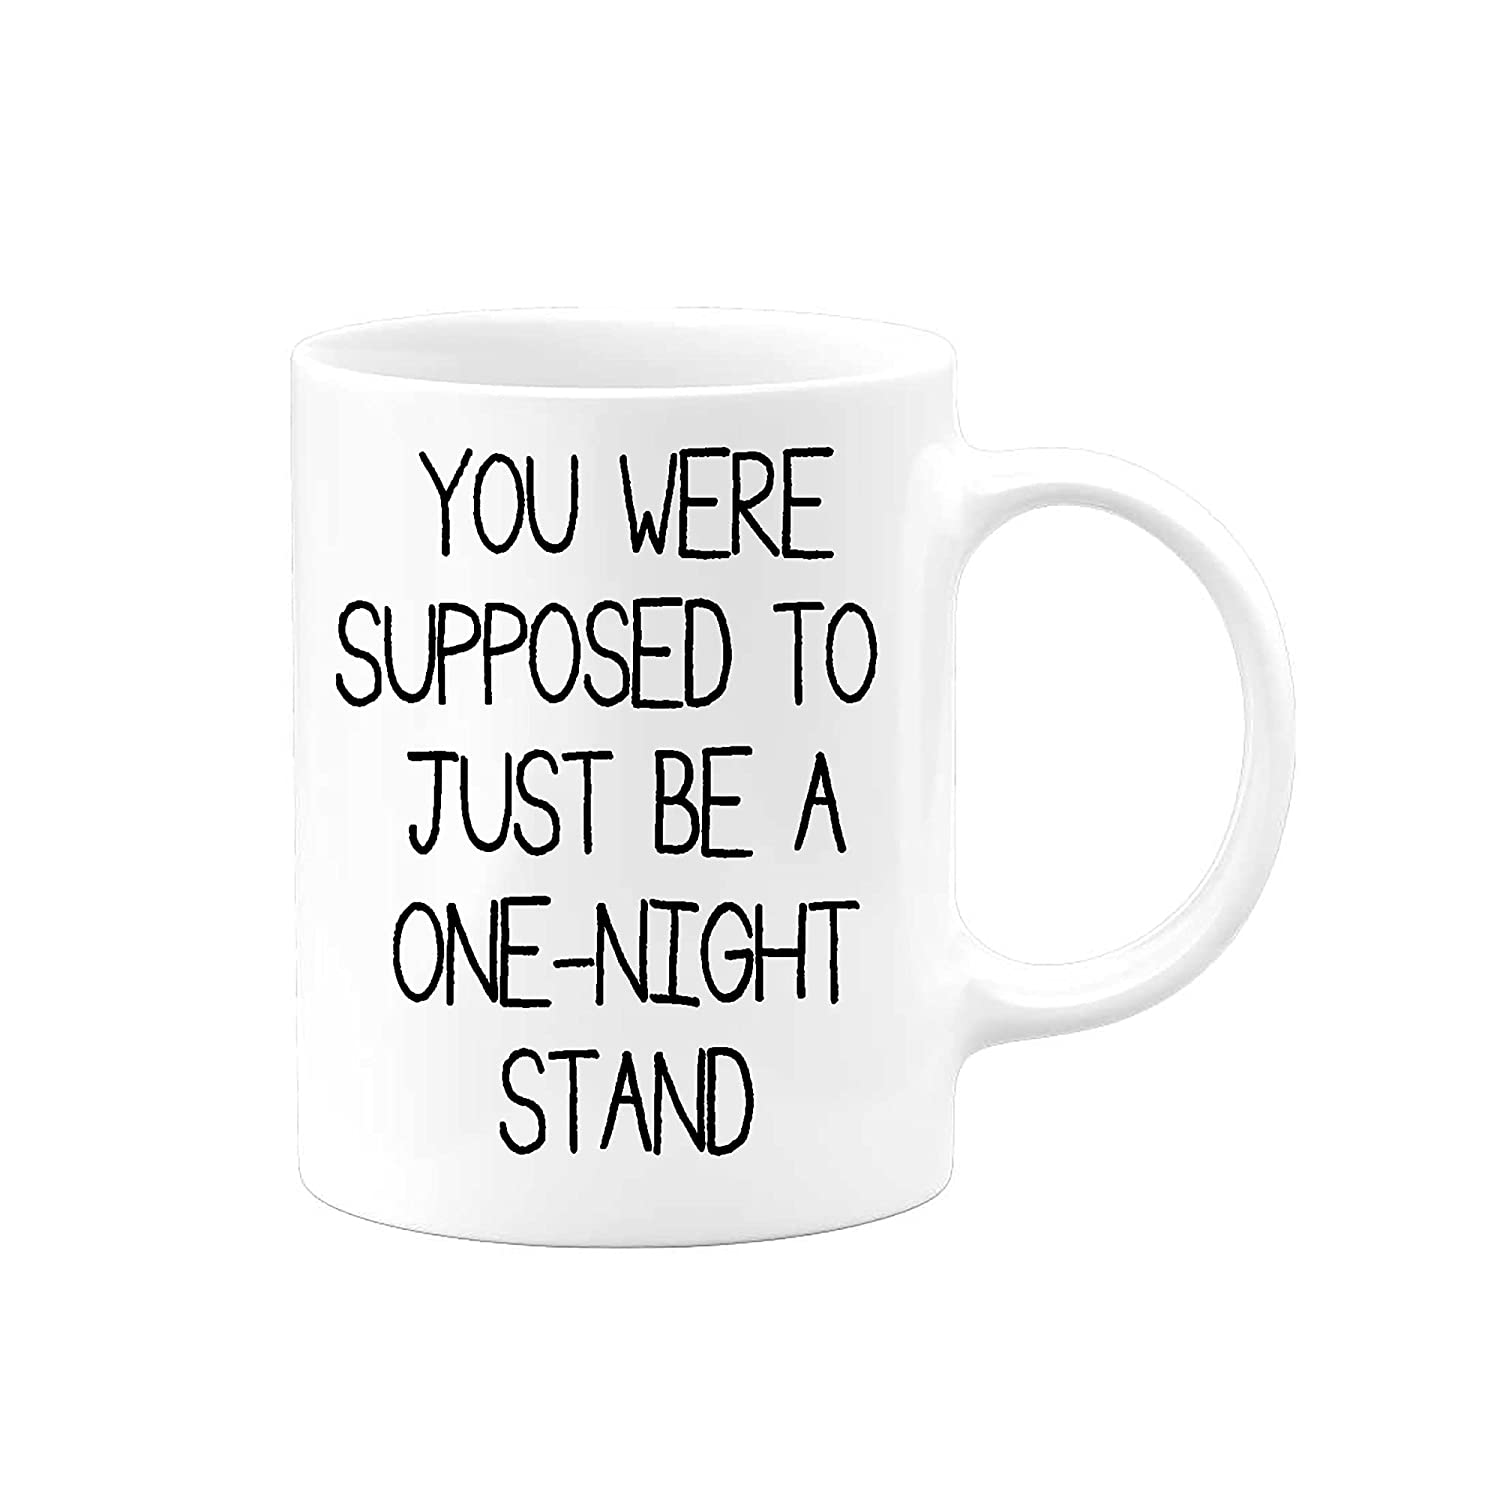 You Were Supposed To Be A One C Hilarious Funny Gift 5 ☆ popular Night Inexpensive Stand